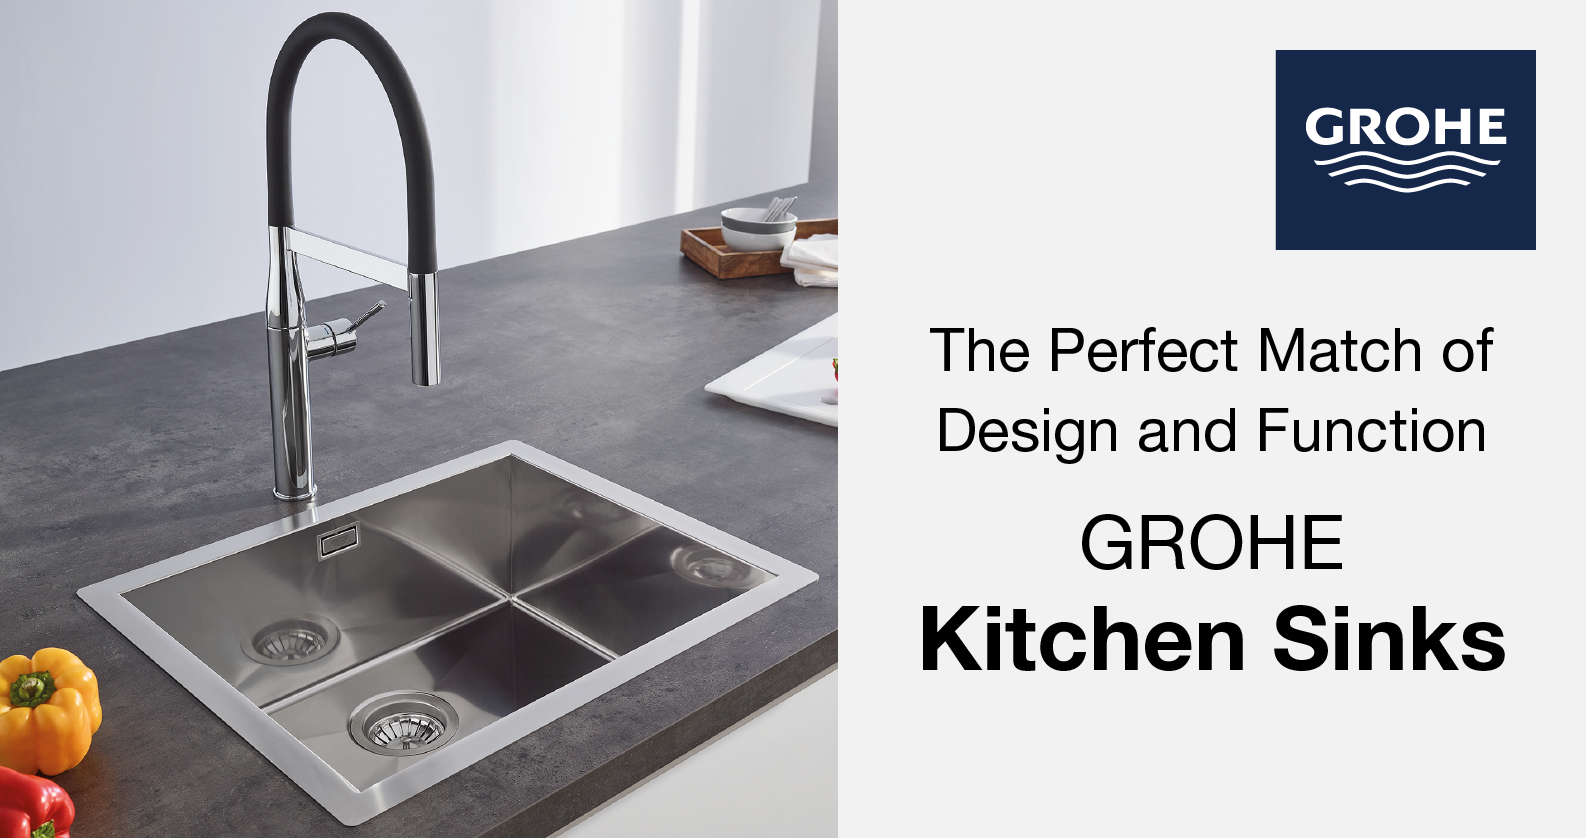 Kitchen Sinks from GROHE